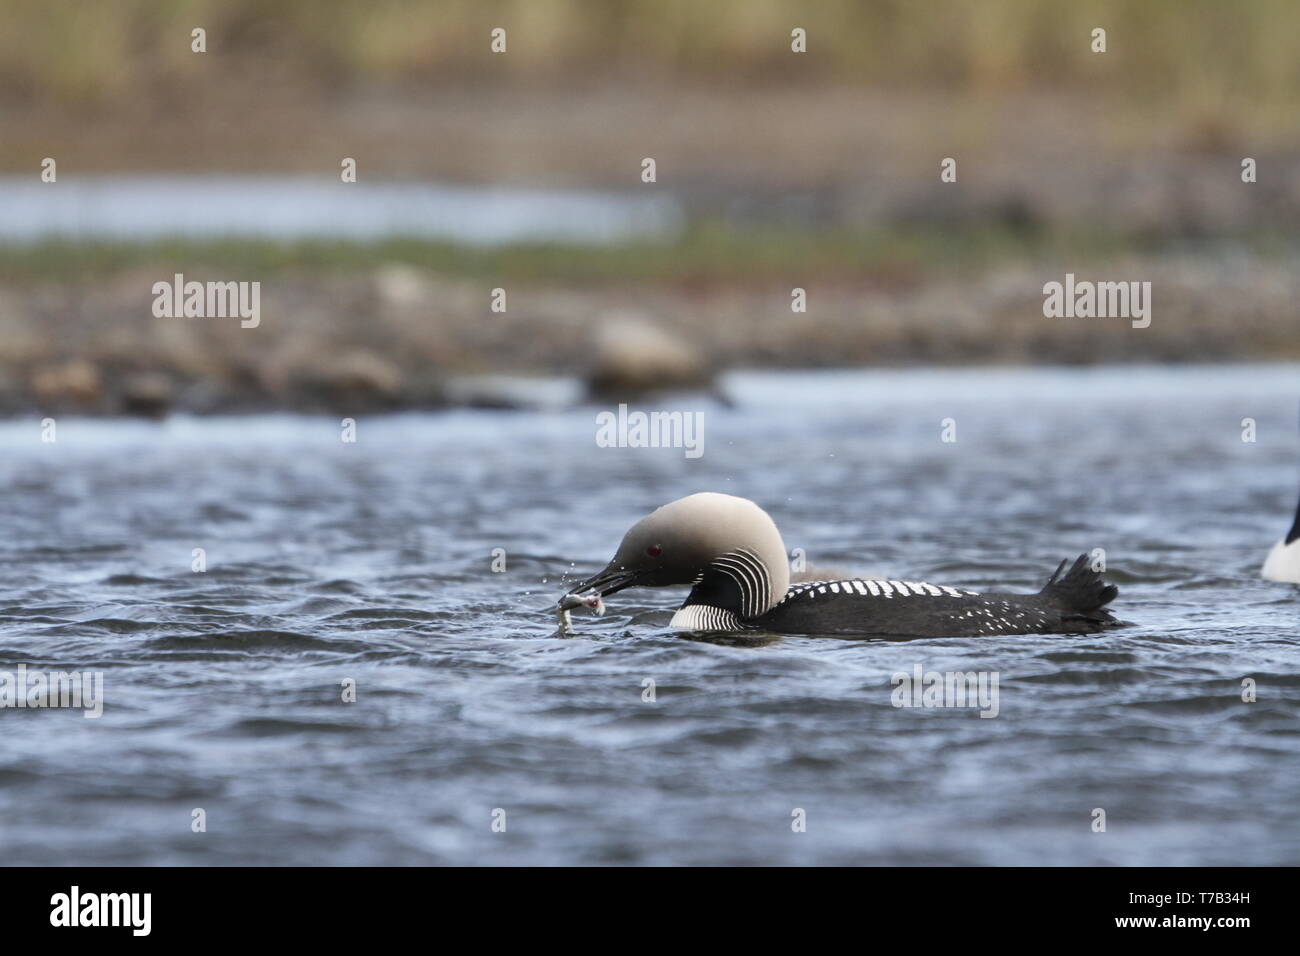 Pacific Loon or Pacific Diver fishing in arctic waters, near Arviat Nunavut, Canada - Stock Image